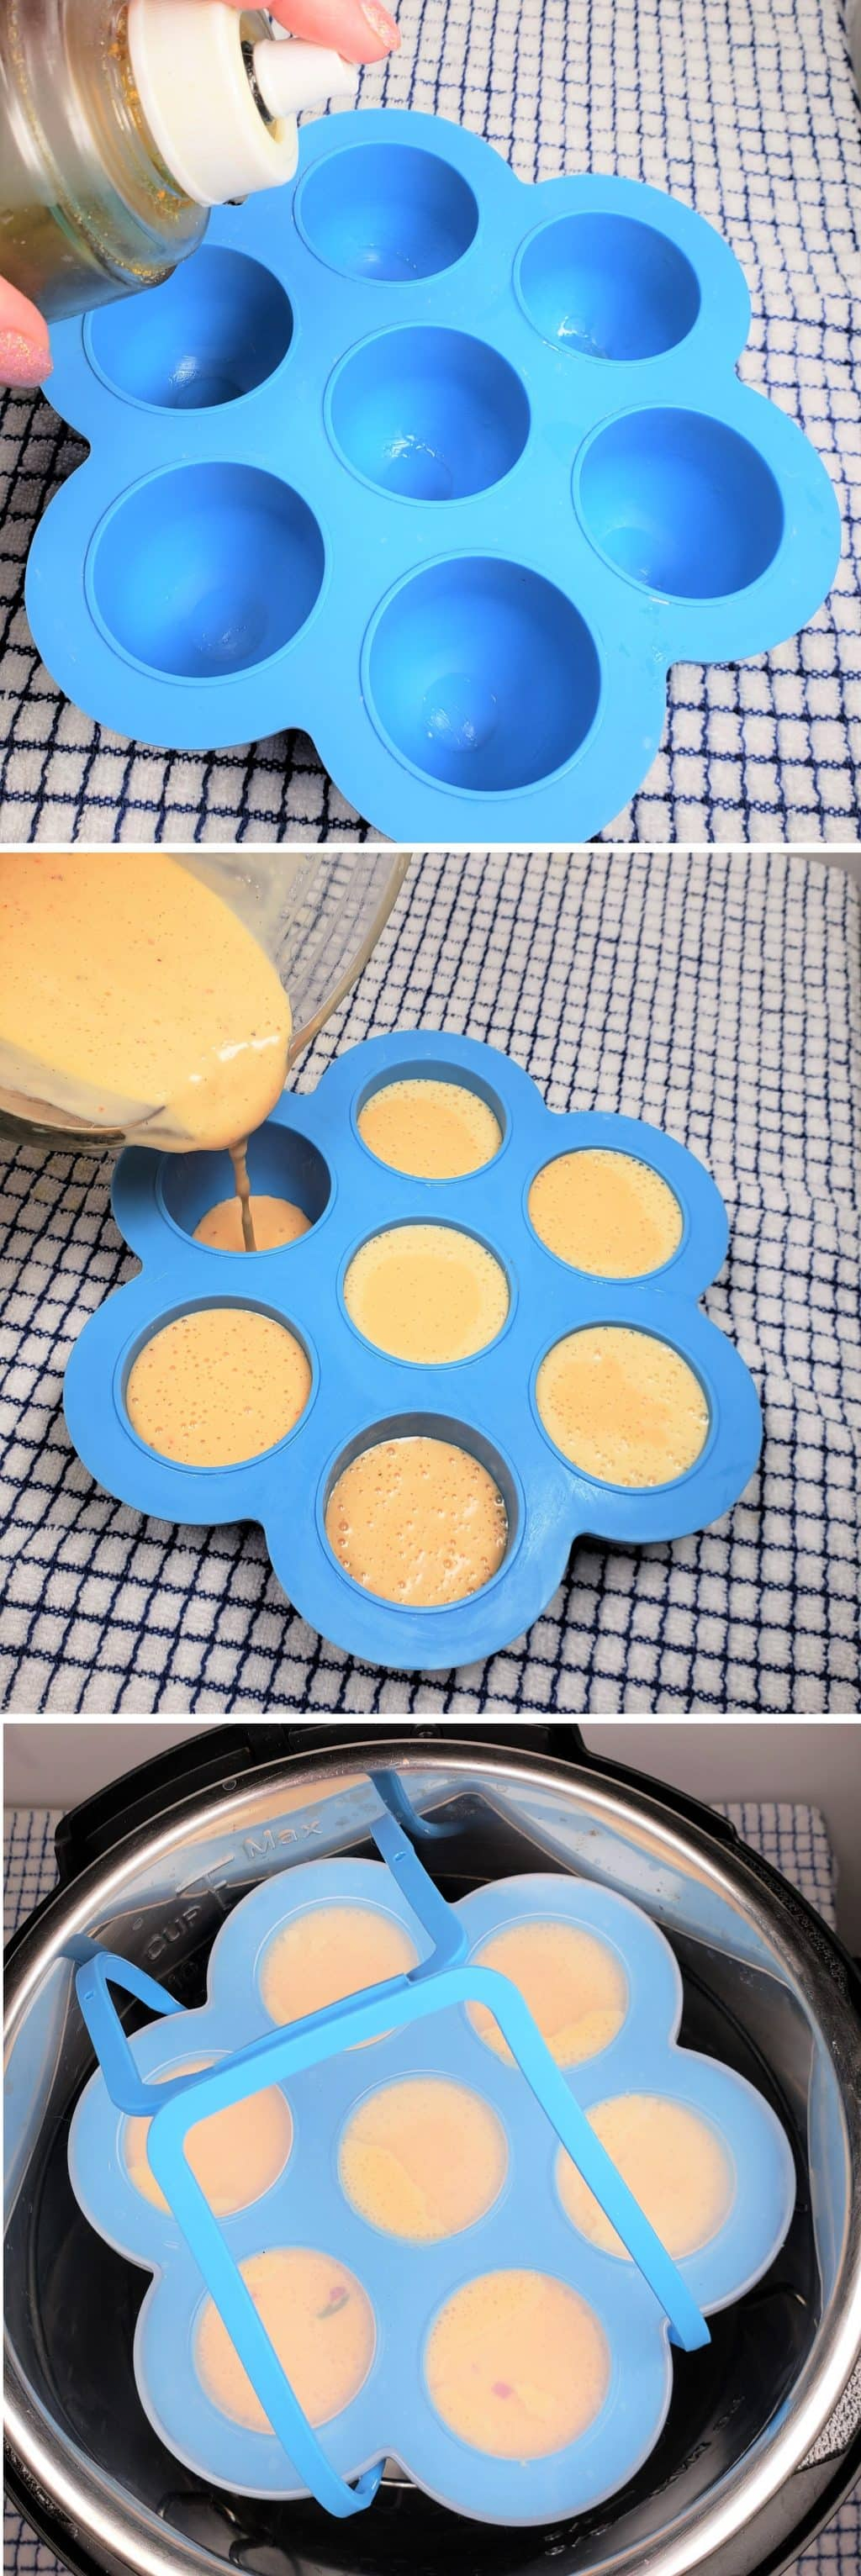 Fill the Egg Bites Tray